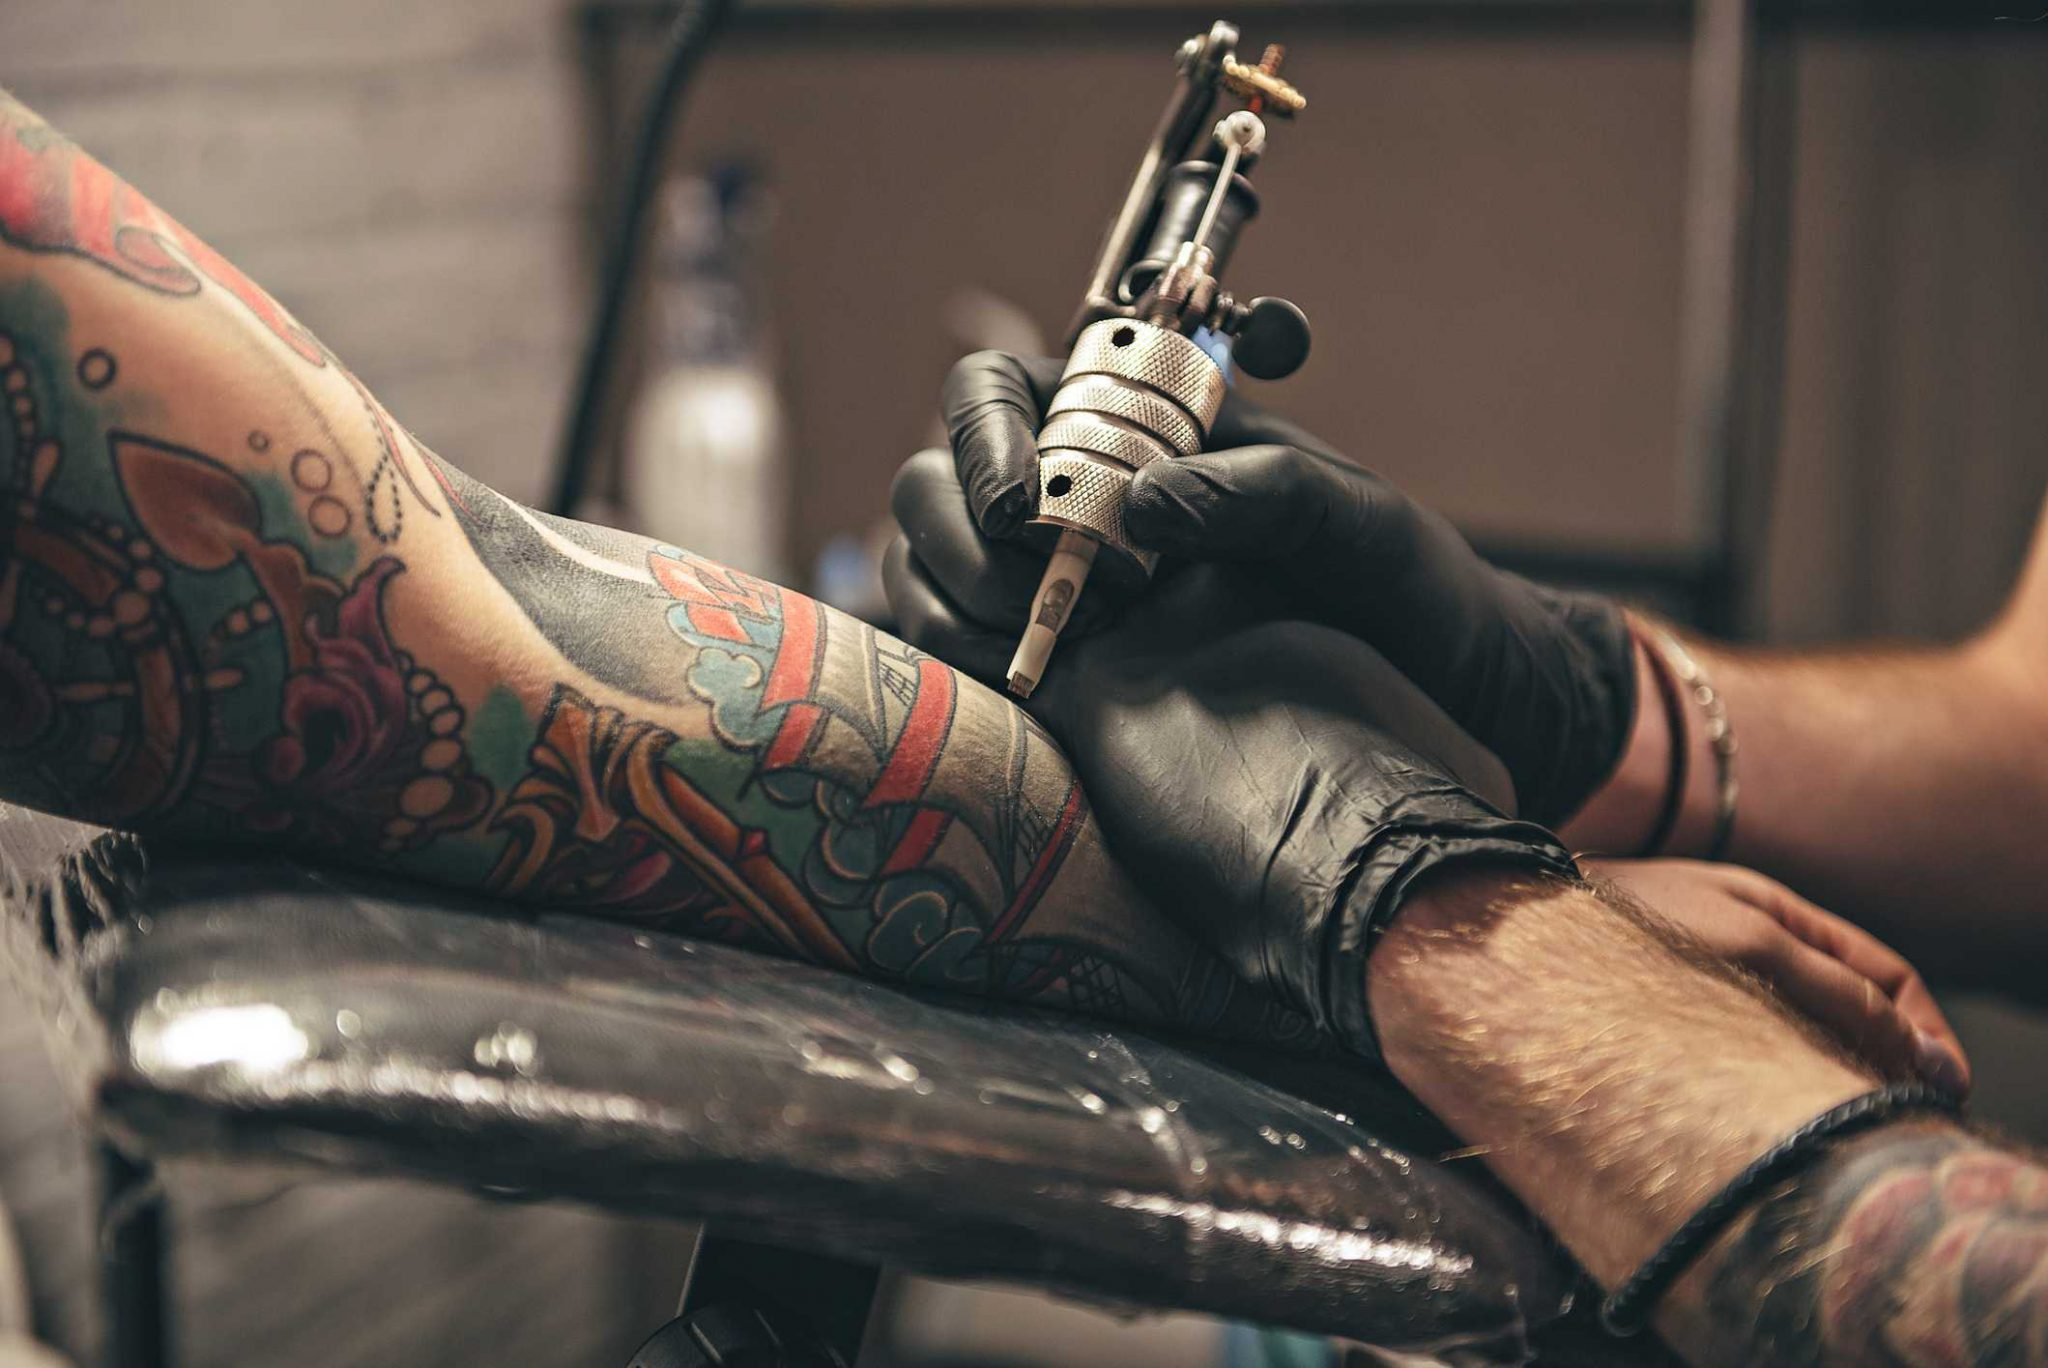 Tattoos And Diabetes Safety Risks Nanotechnology Tattoos,Christmas Stockings Sale